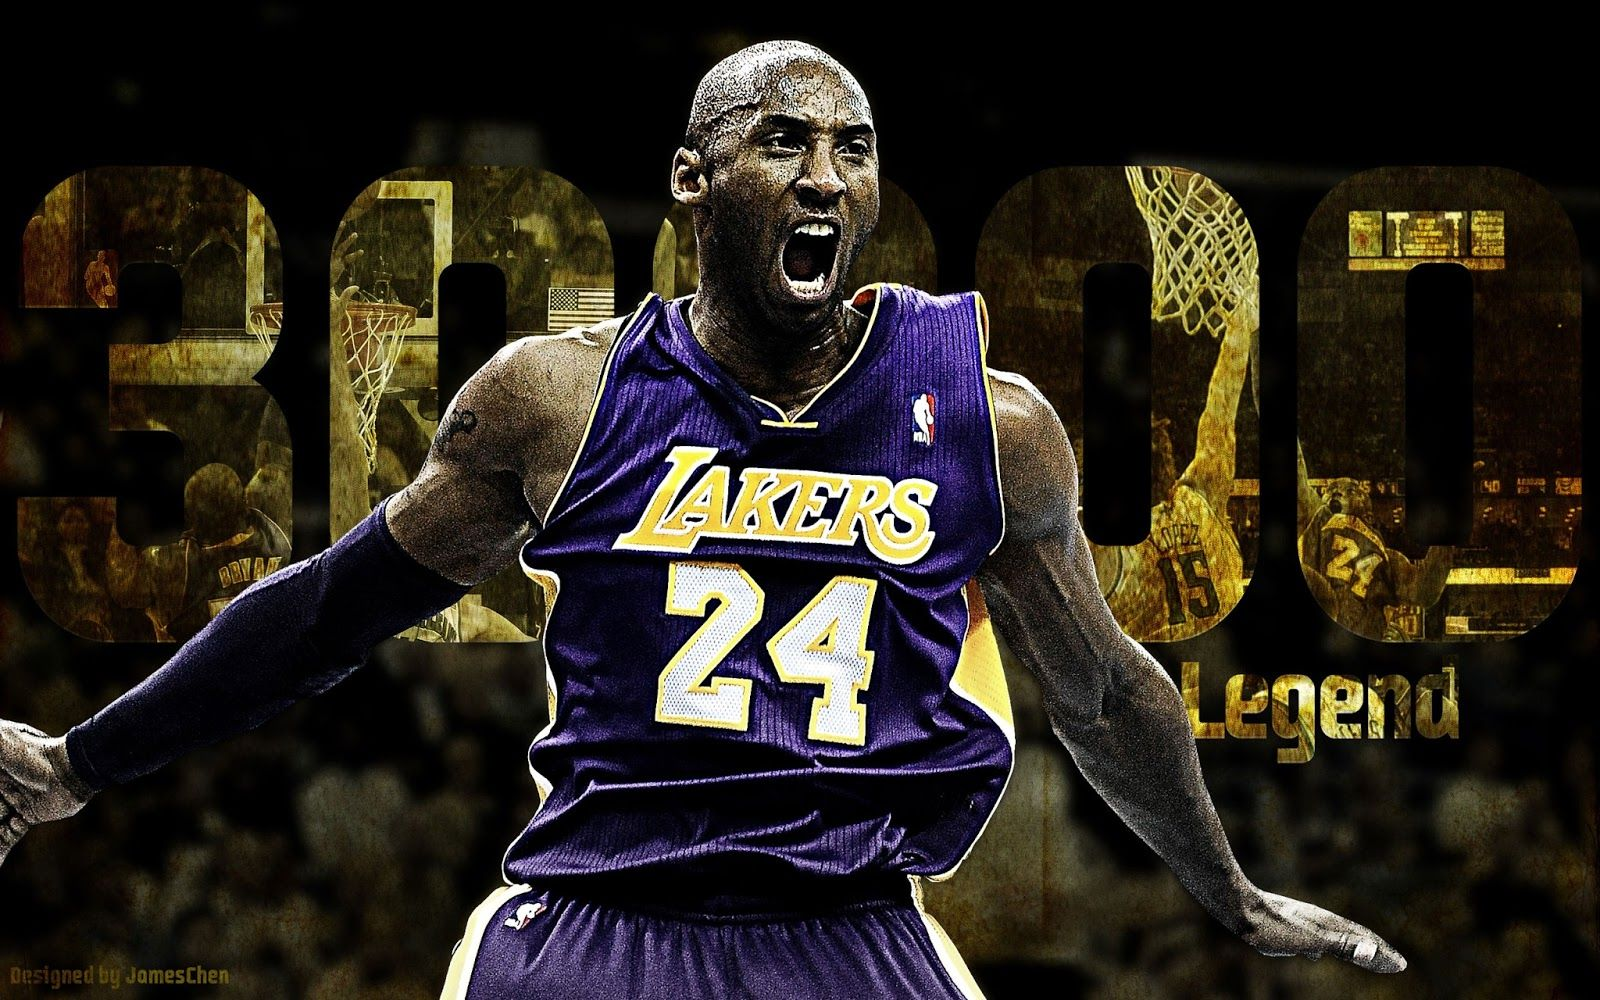 Most Inspiring Wallpaper Logo Kobe Bryant - 661cf092d14846e1aa643eac390a4e85  Perfect Image Reference_491371.jpg